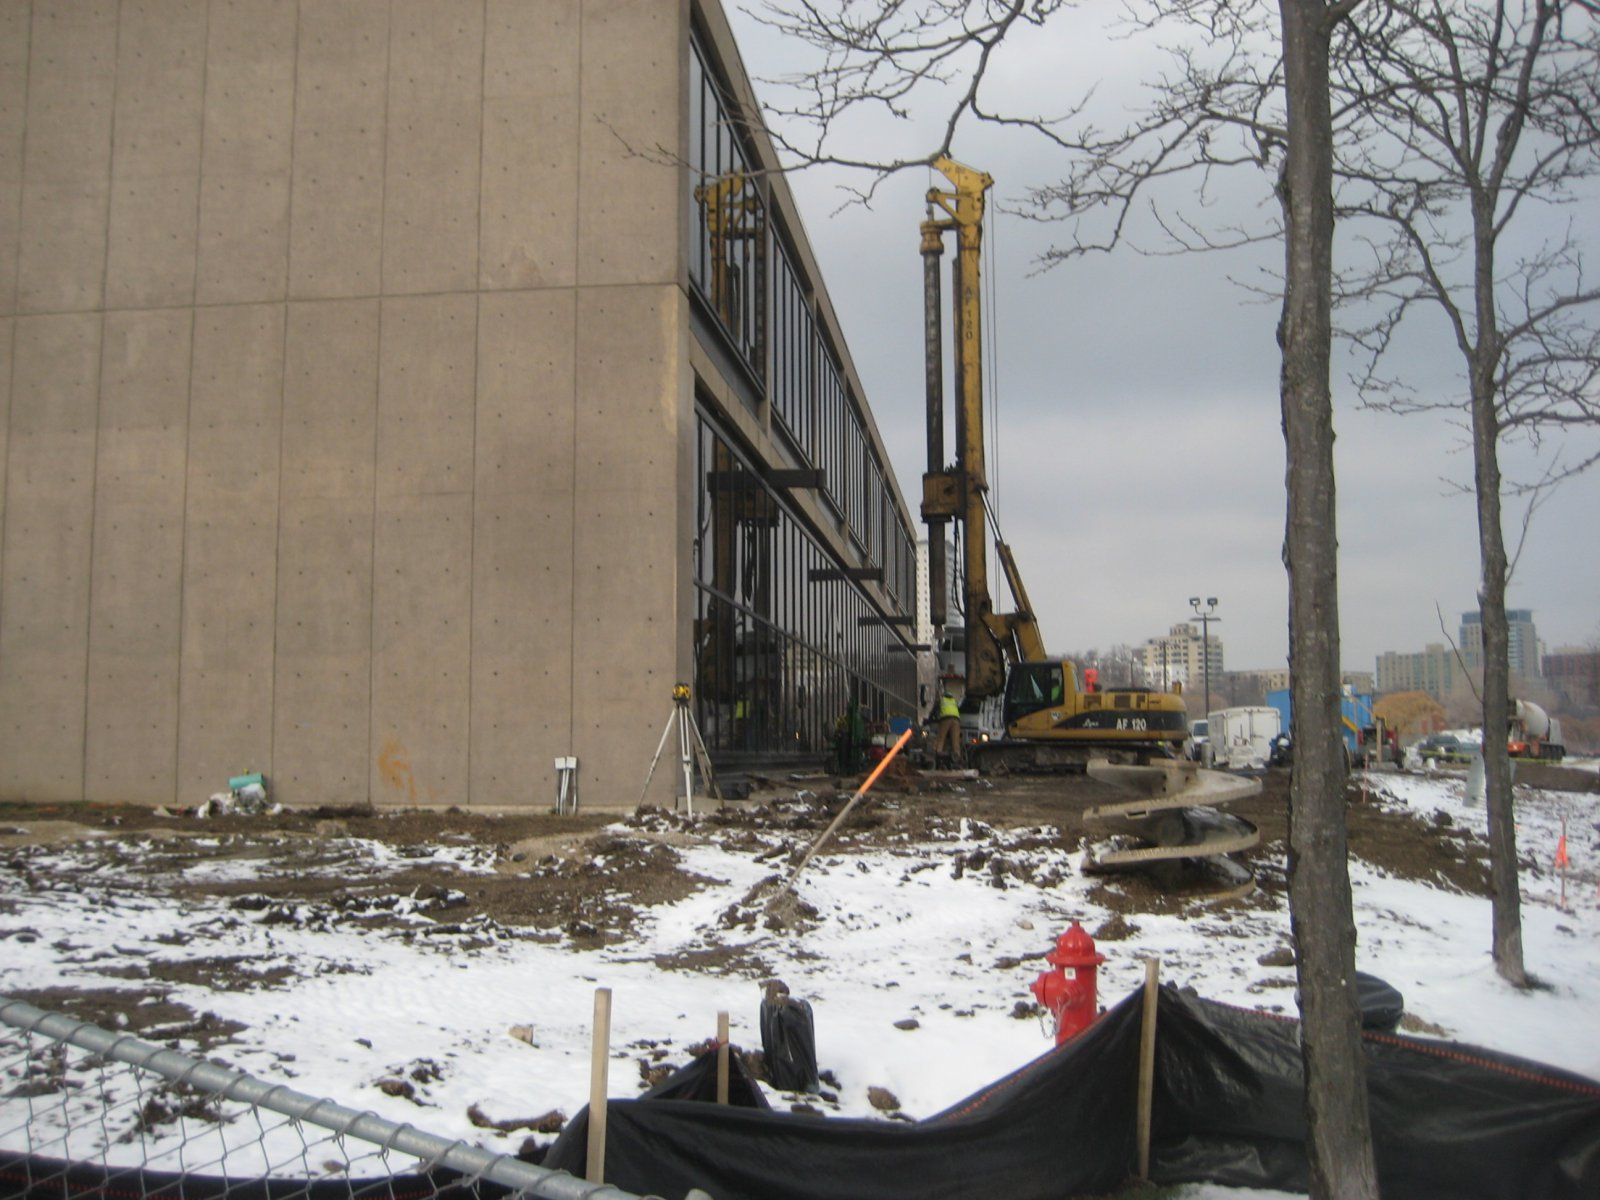 Work has started on the Milwaukee Art Museum expansion project.